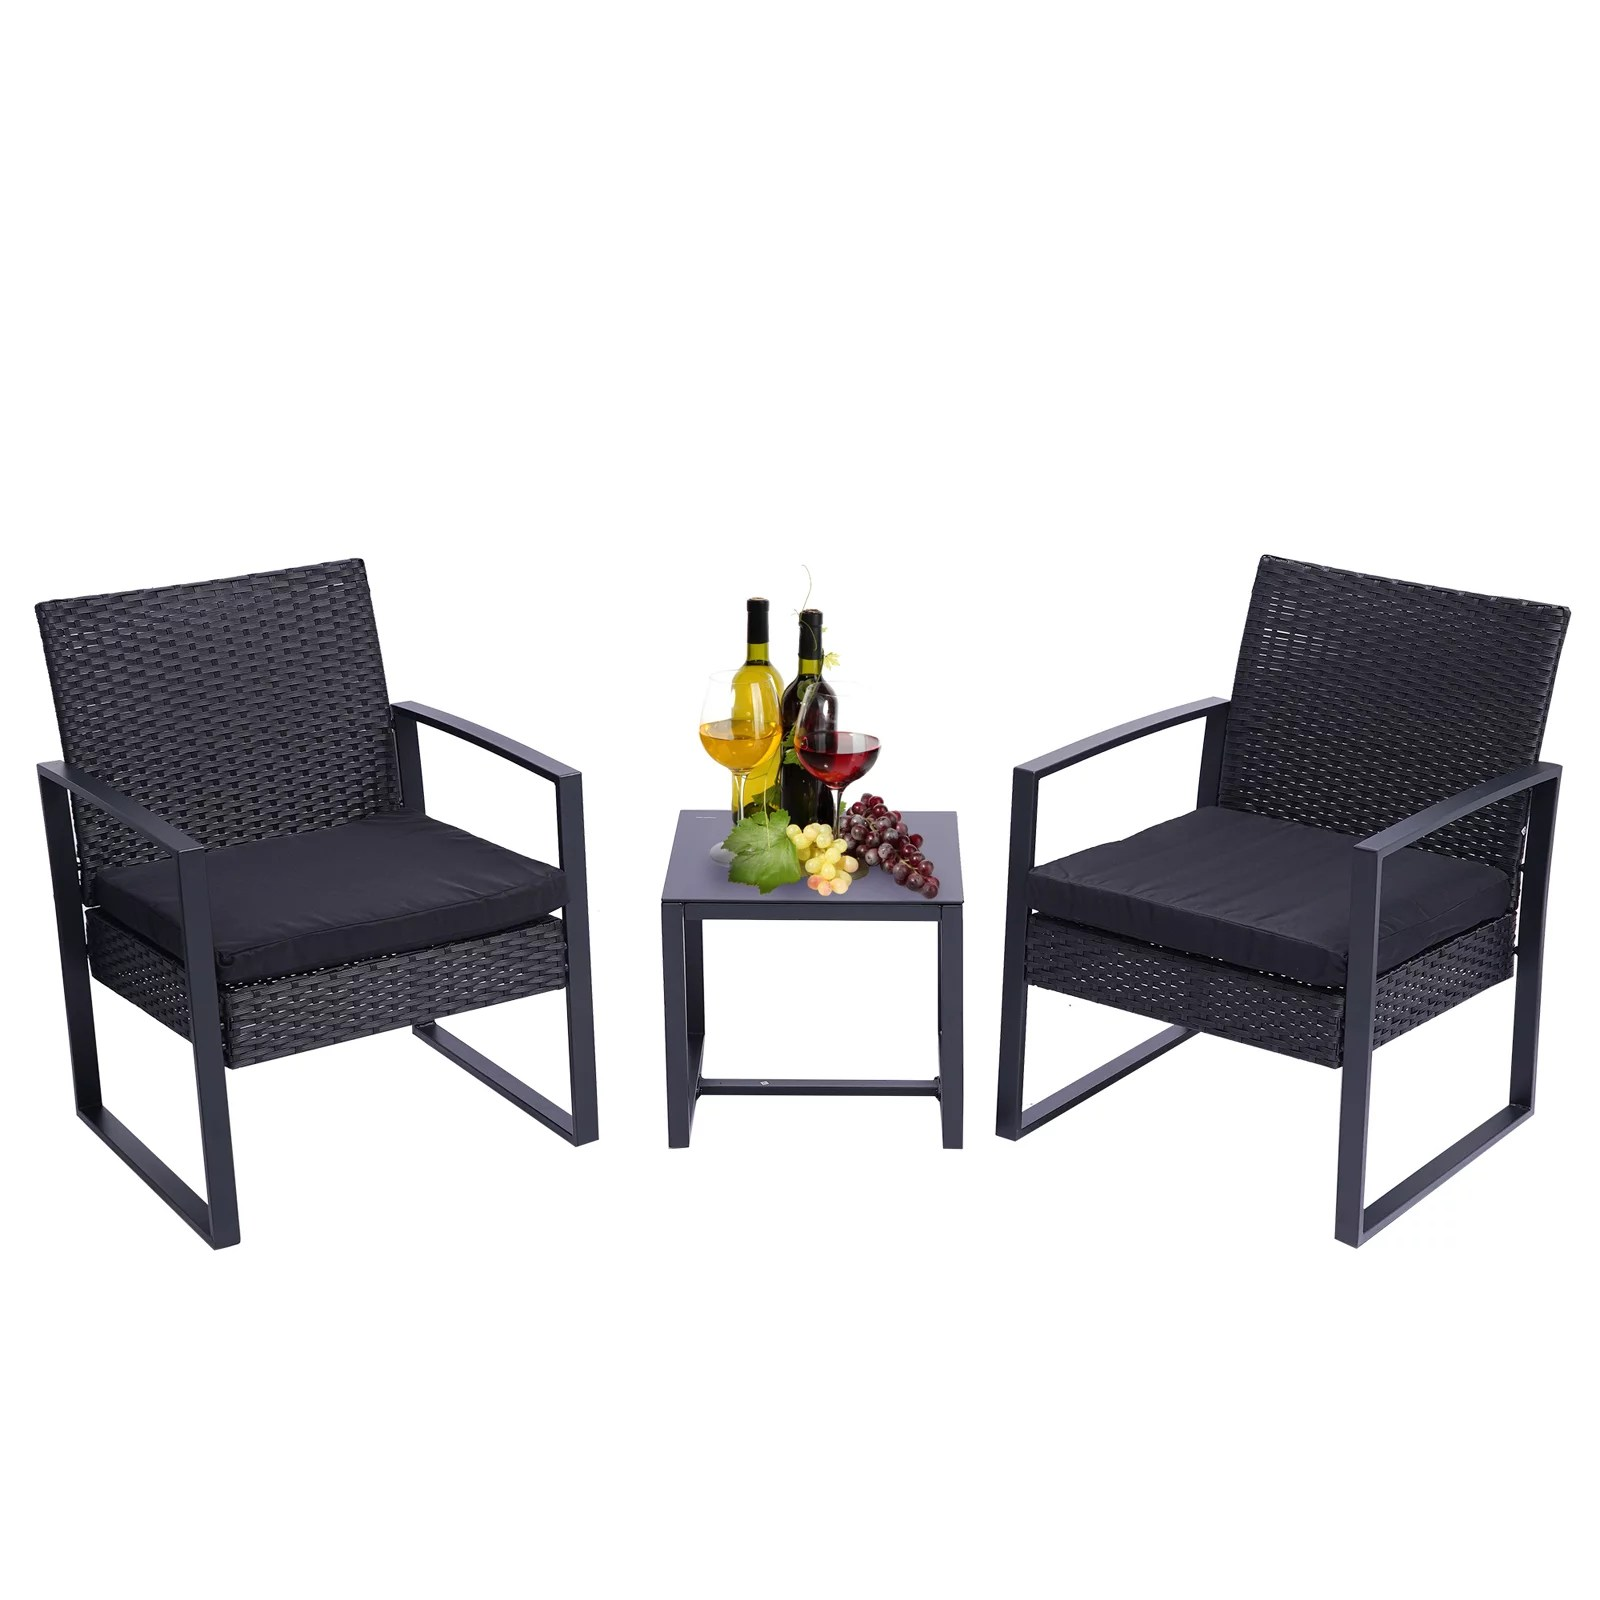 clearance sale 3 pieces patio set outdoor wicker patio furniture sets modern set rattan chair conversation sets with coffee table for yard and bistro